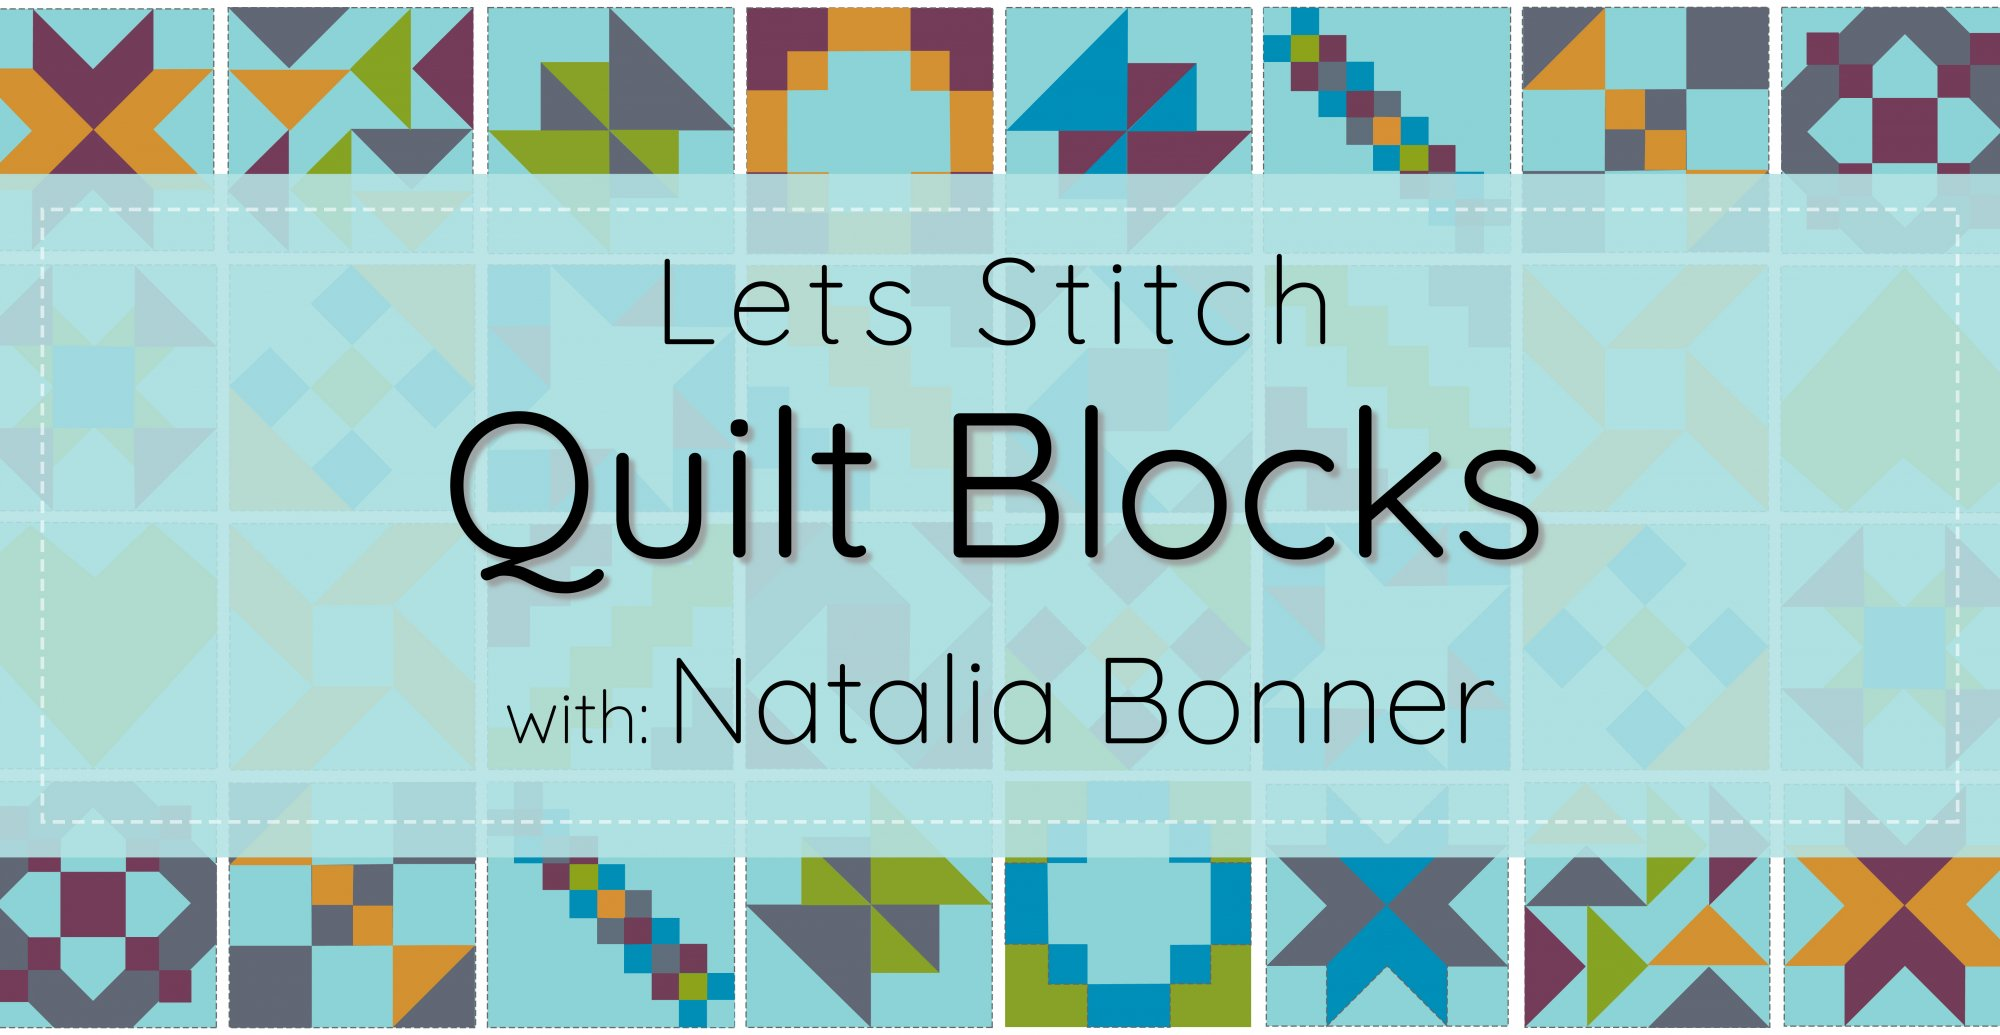 Let's Stitch - Quilt Blocks - An Online Class + Quilt-Along with Natalia Bonner